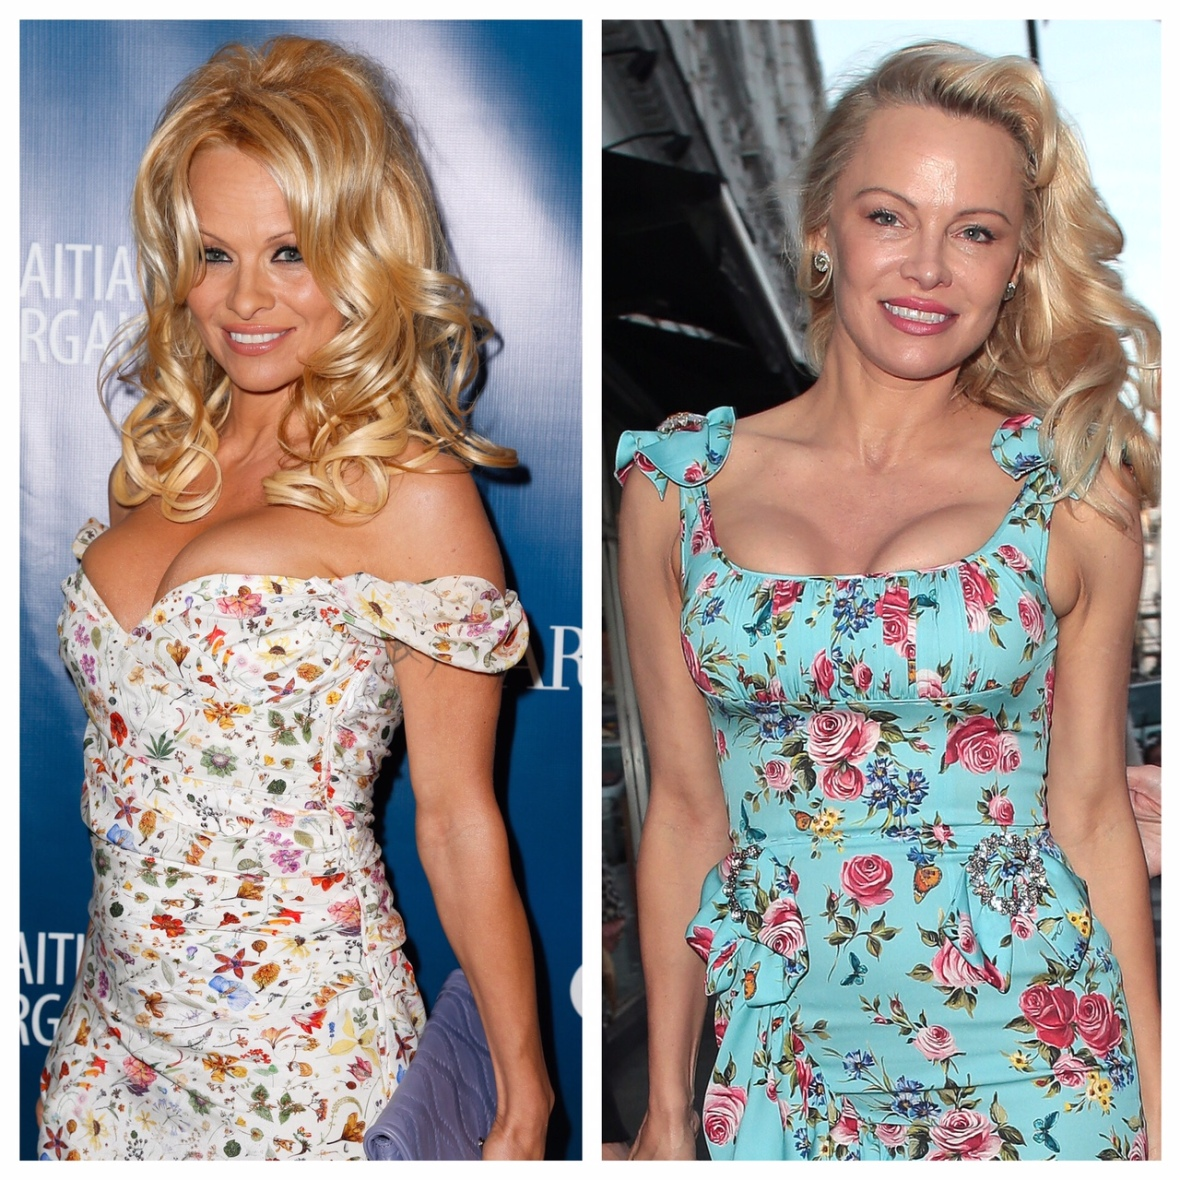 pamela anderson 2013 vs. 2017 getty images